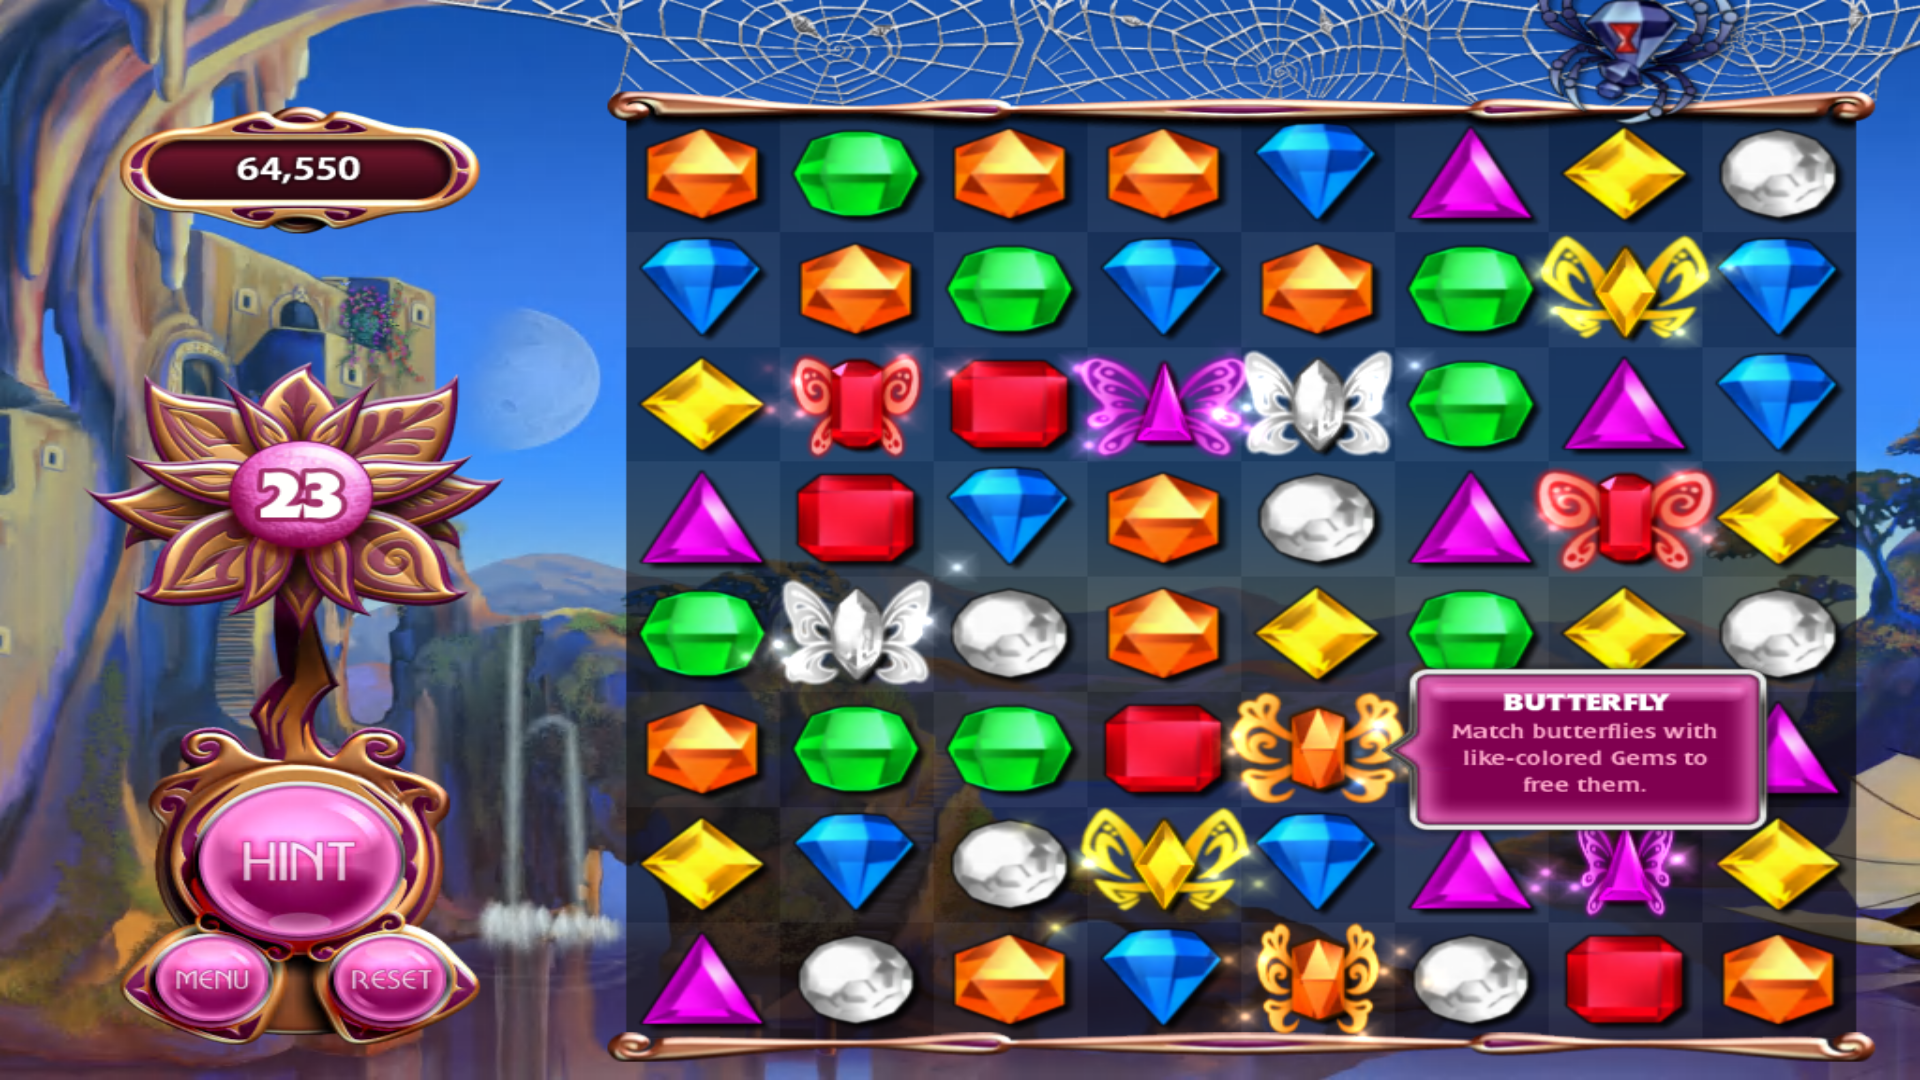 Bejeweled Games